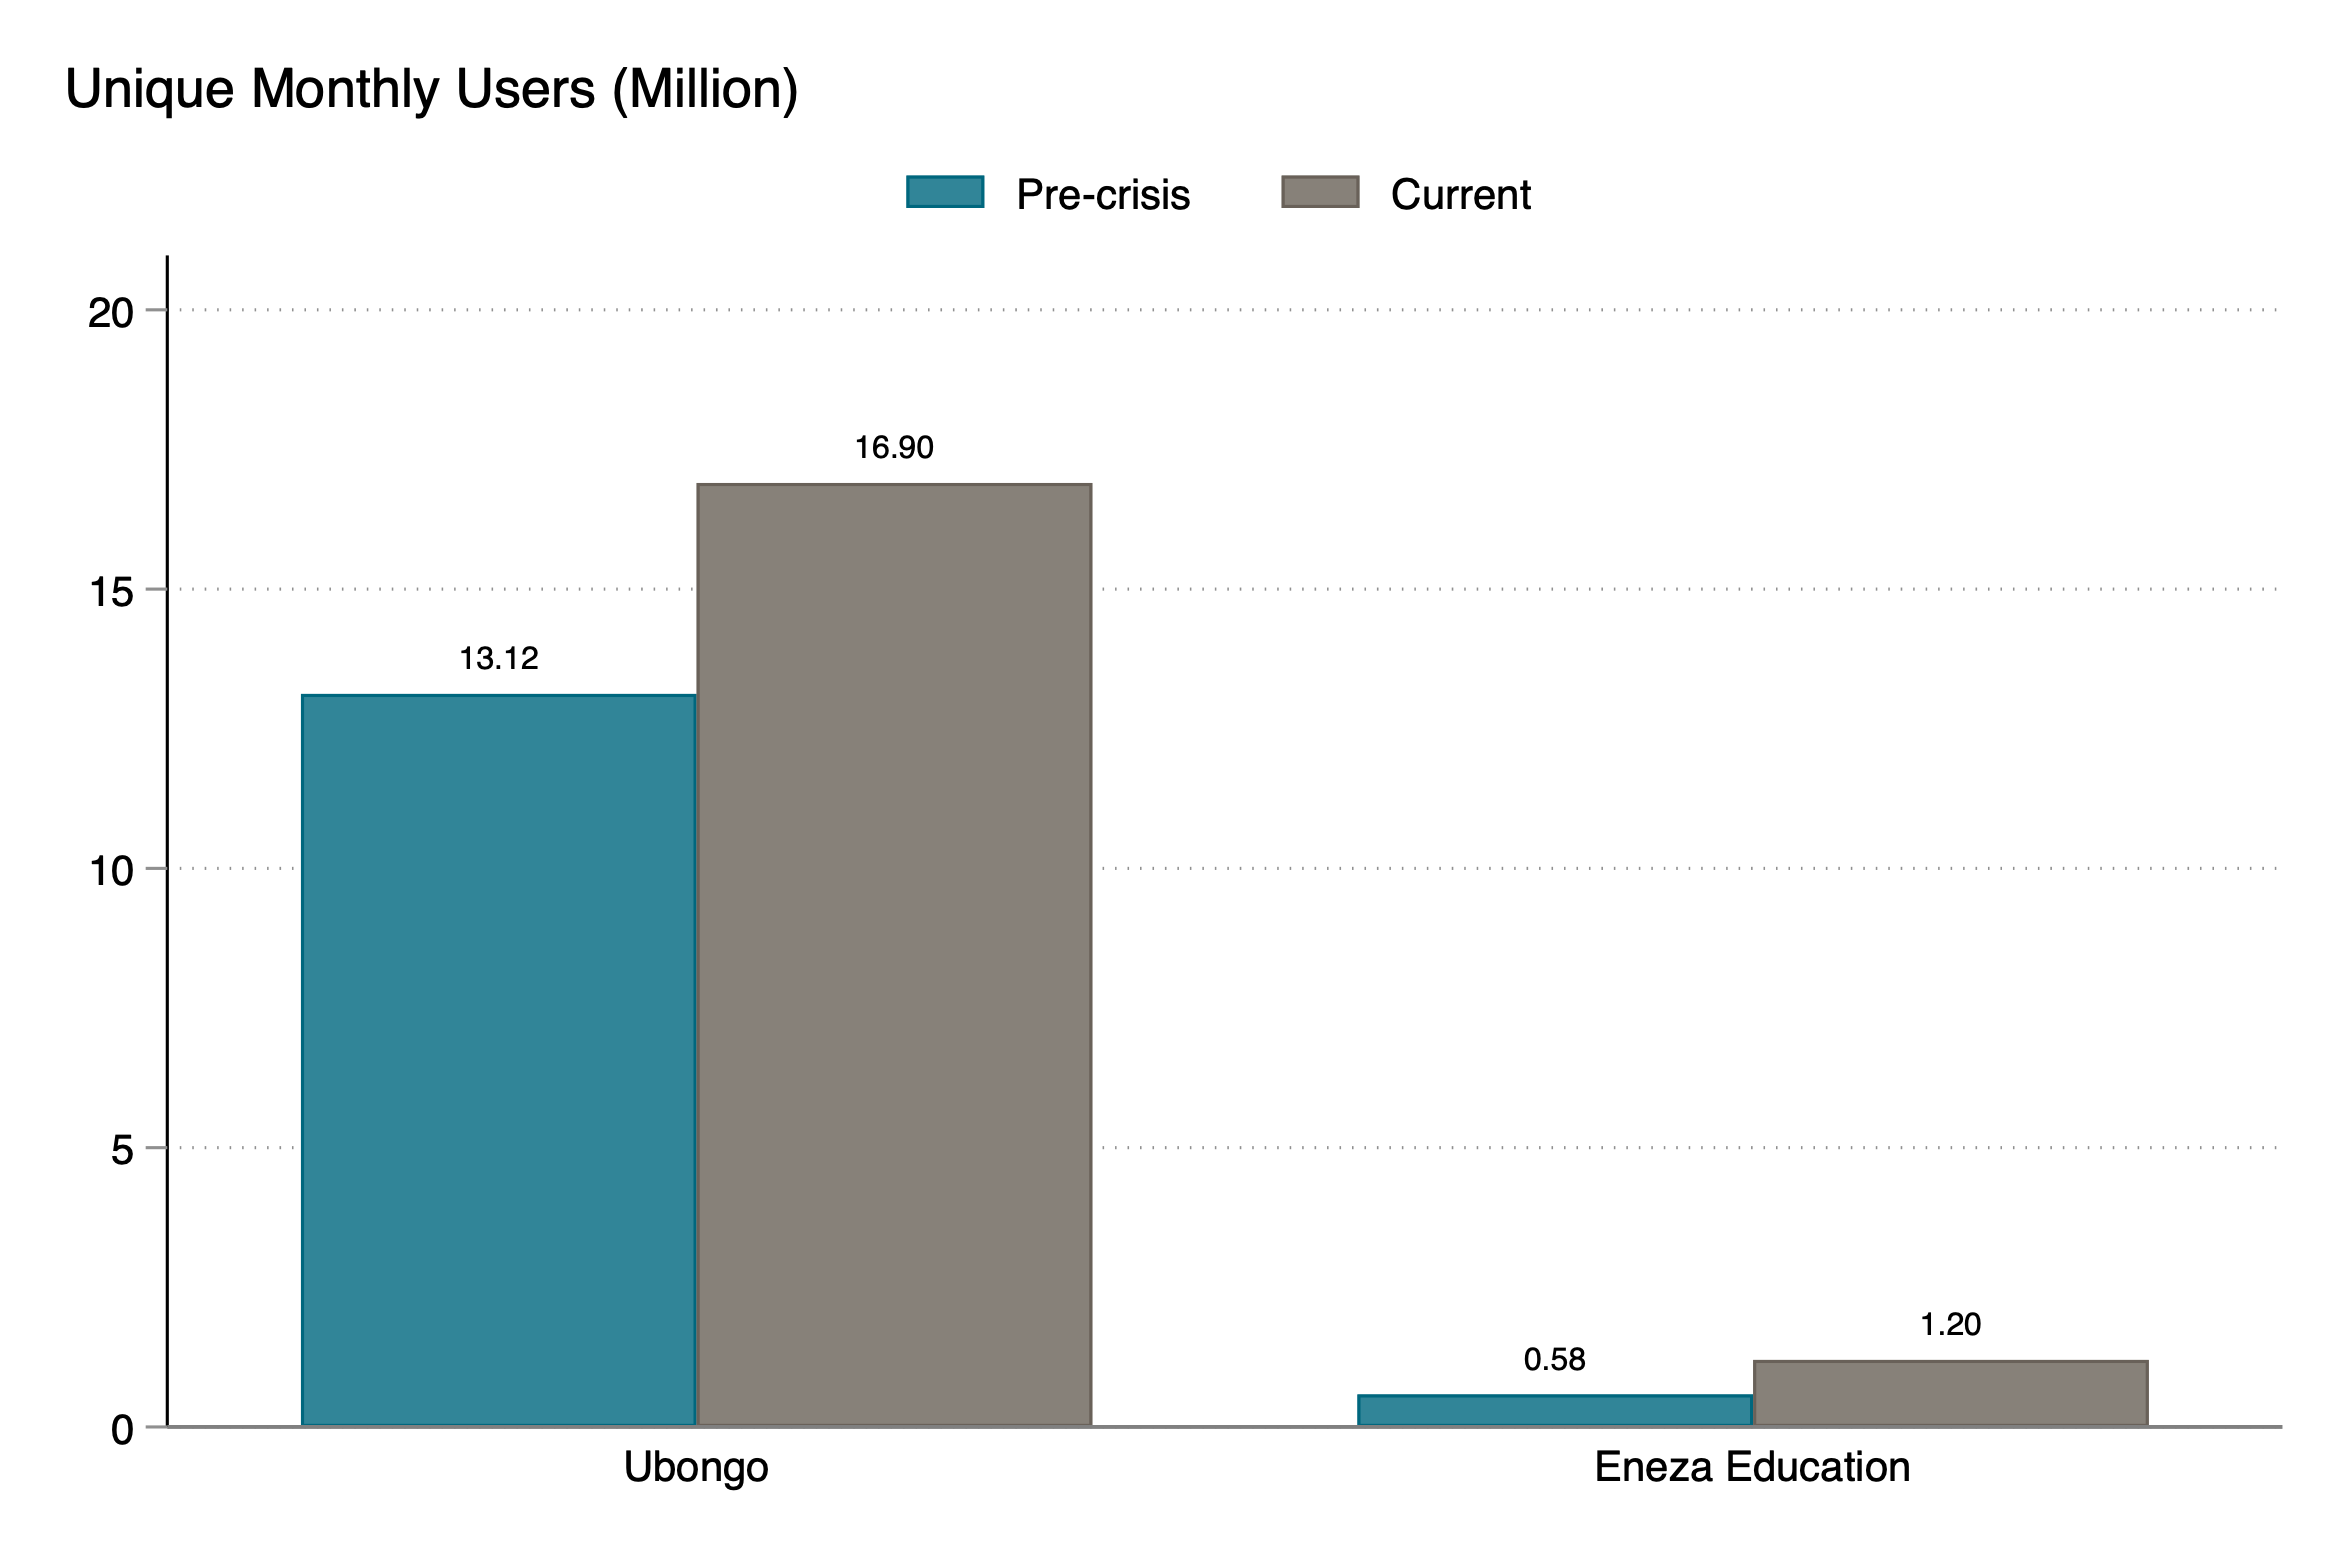 Chart showing that Ubongo and Eneza have both seen large jumps in monthly users since the crisis, and Ubongo leads by a lot on monthly users